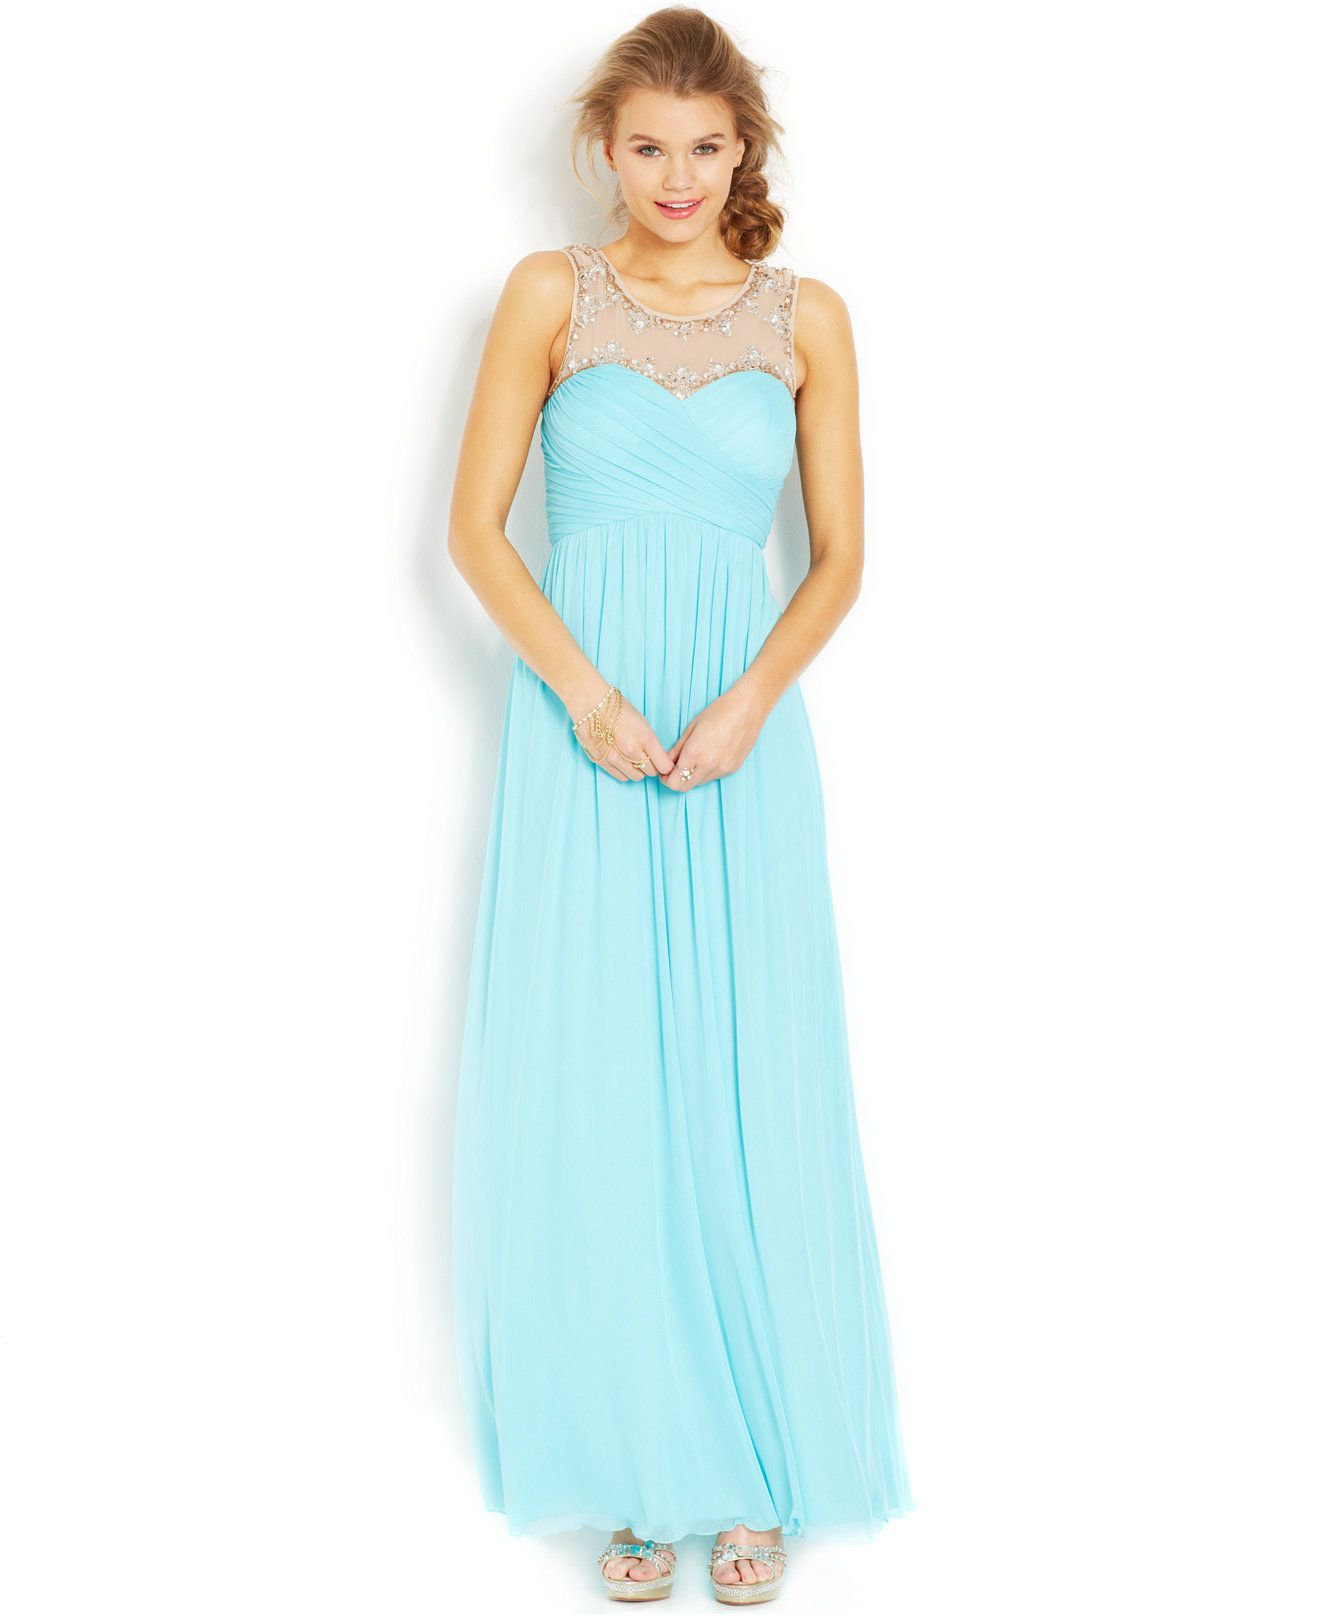 696753d3665b Turquoise Bridesmaid Dresses Macys | Saddha